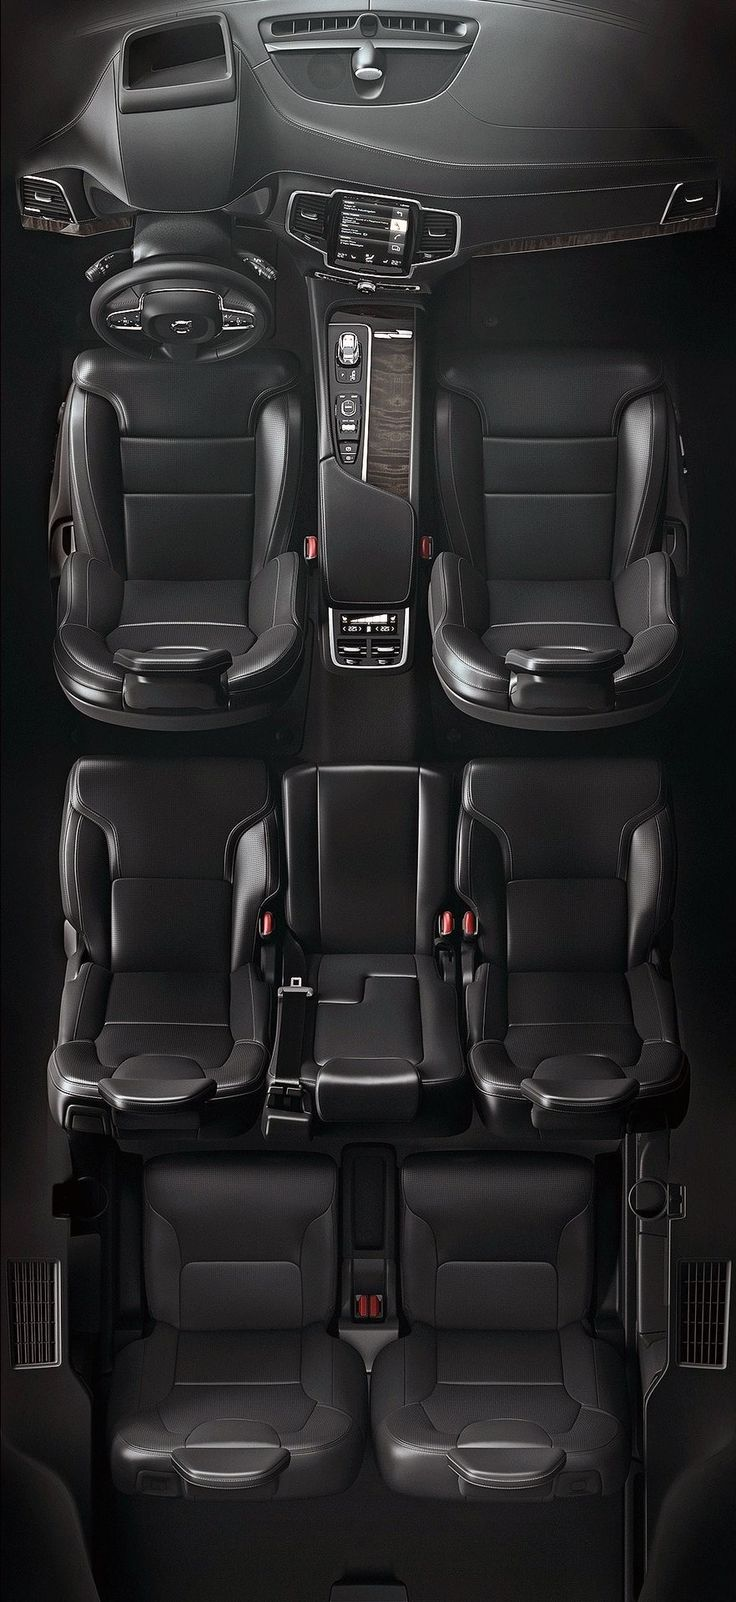 best 25 volvo xc90 ideas on pinterest volvo suv volvo and volvo cx90. Black Bedroom Furniture Sets. Home Design Ideas